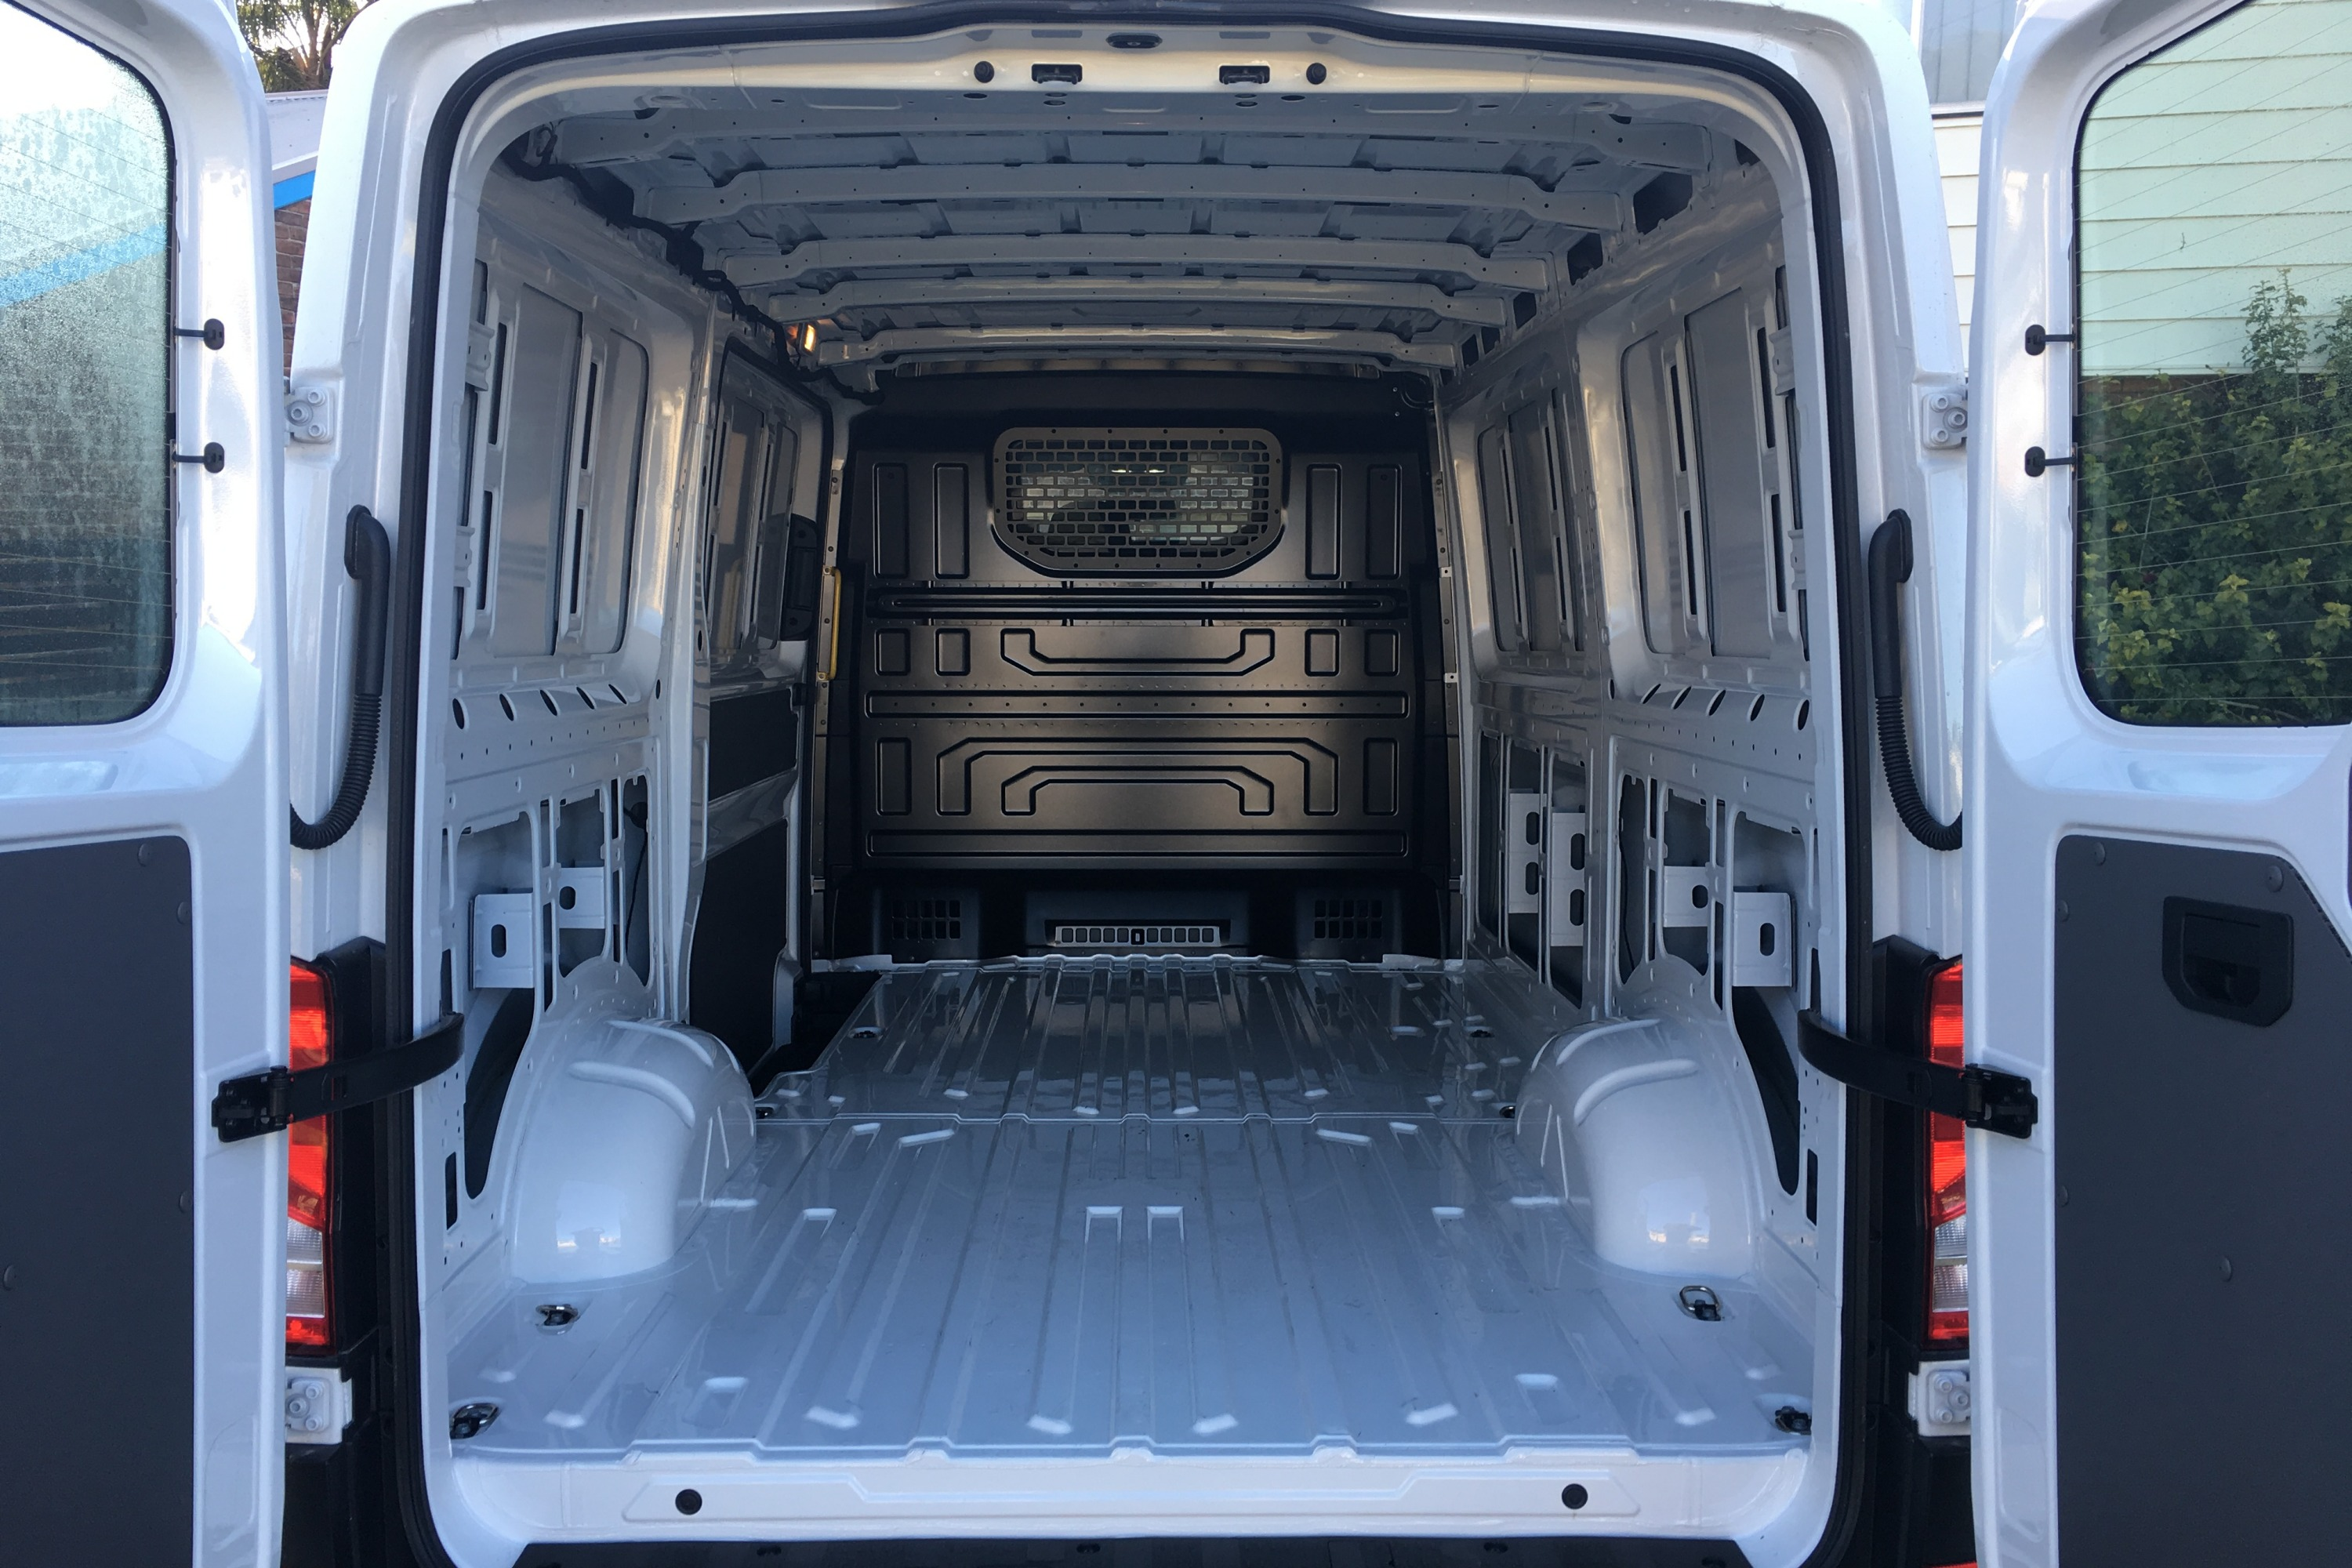 2019 VW Crafter 4MOTION 3 rear cargo